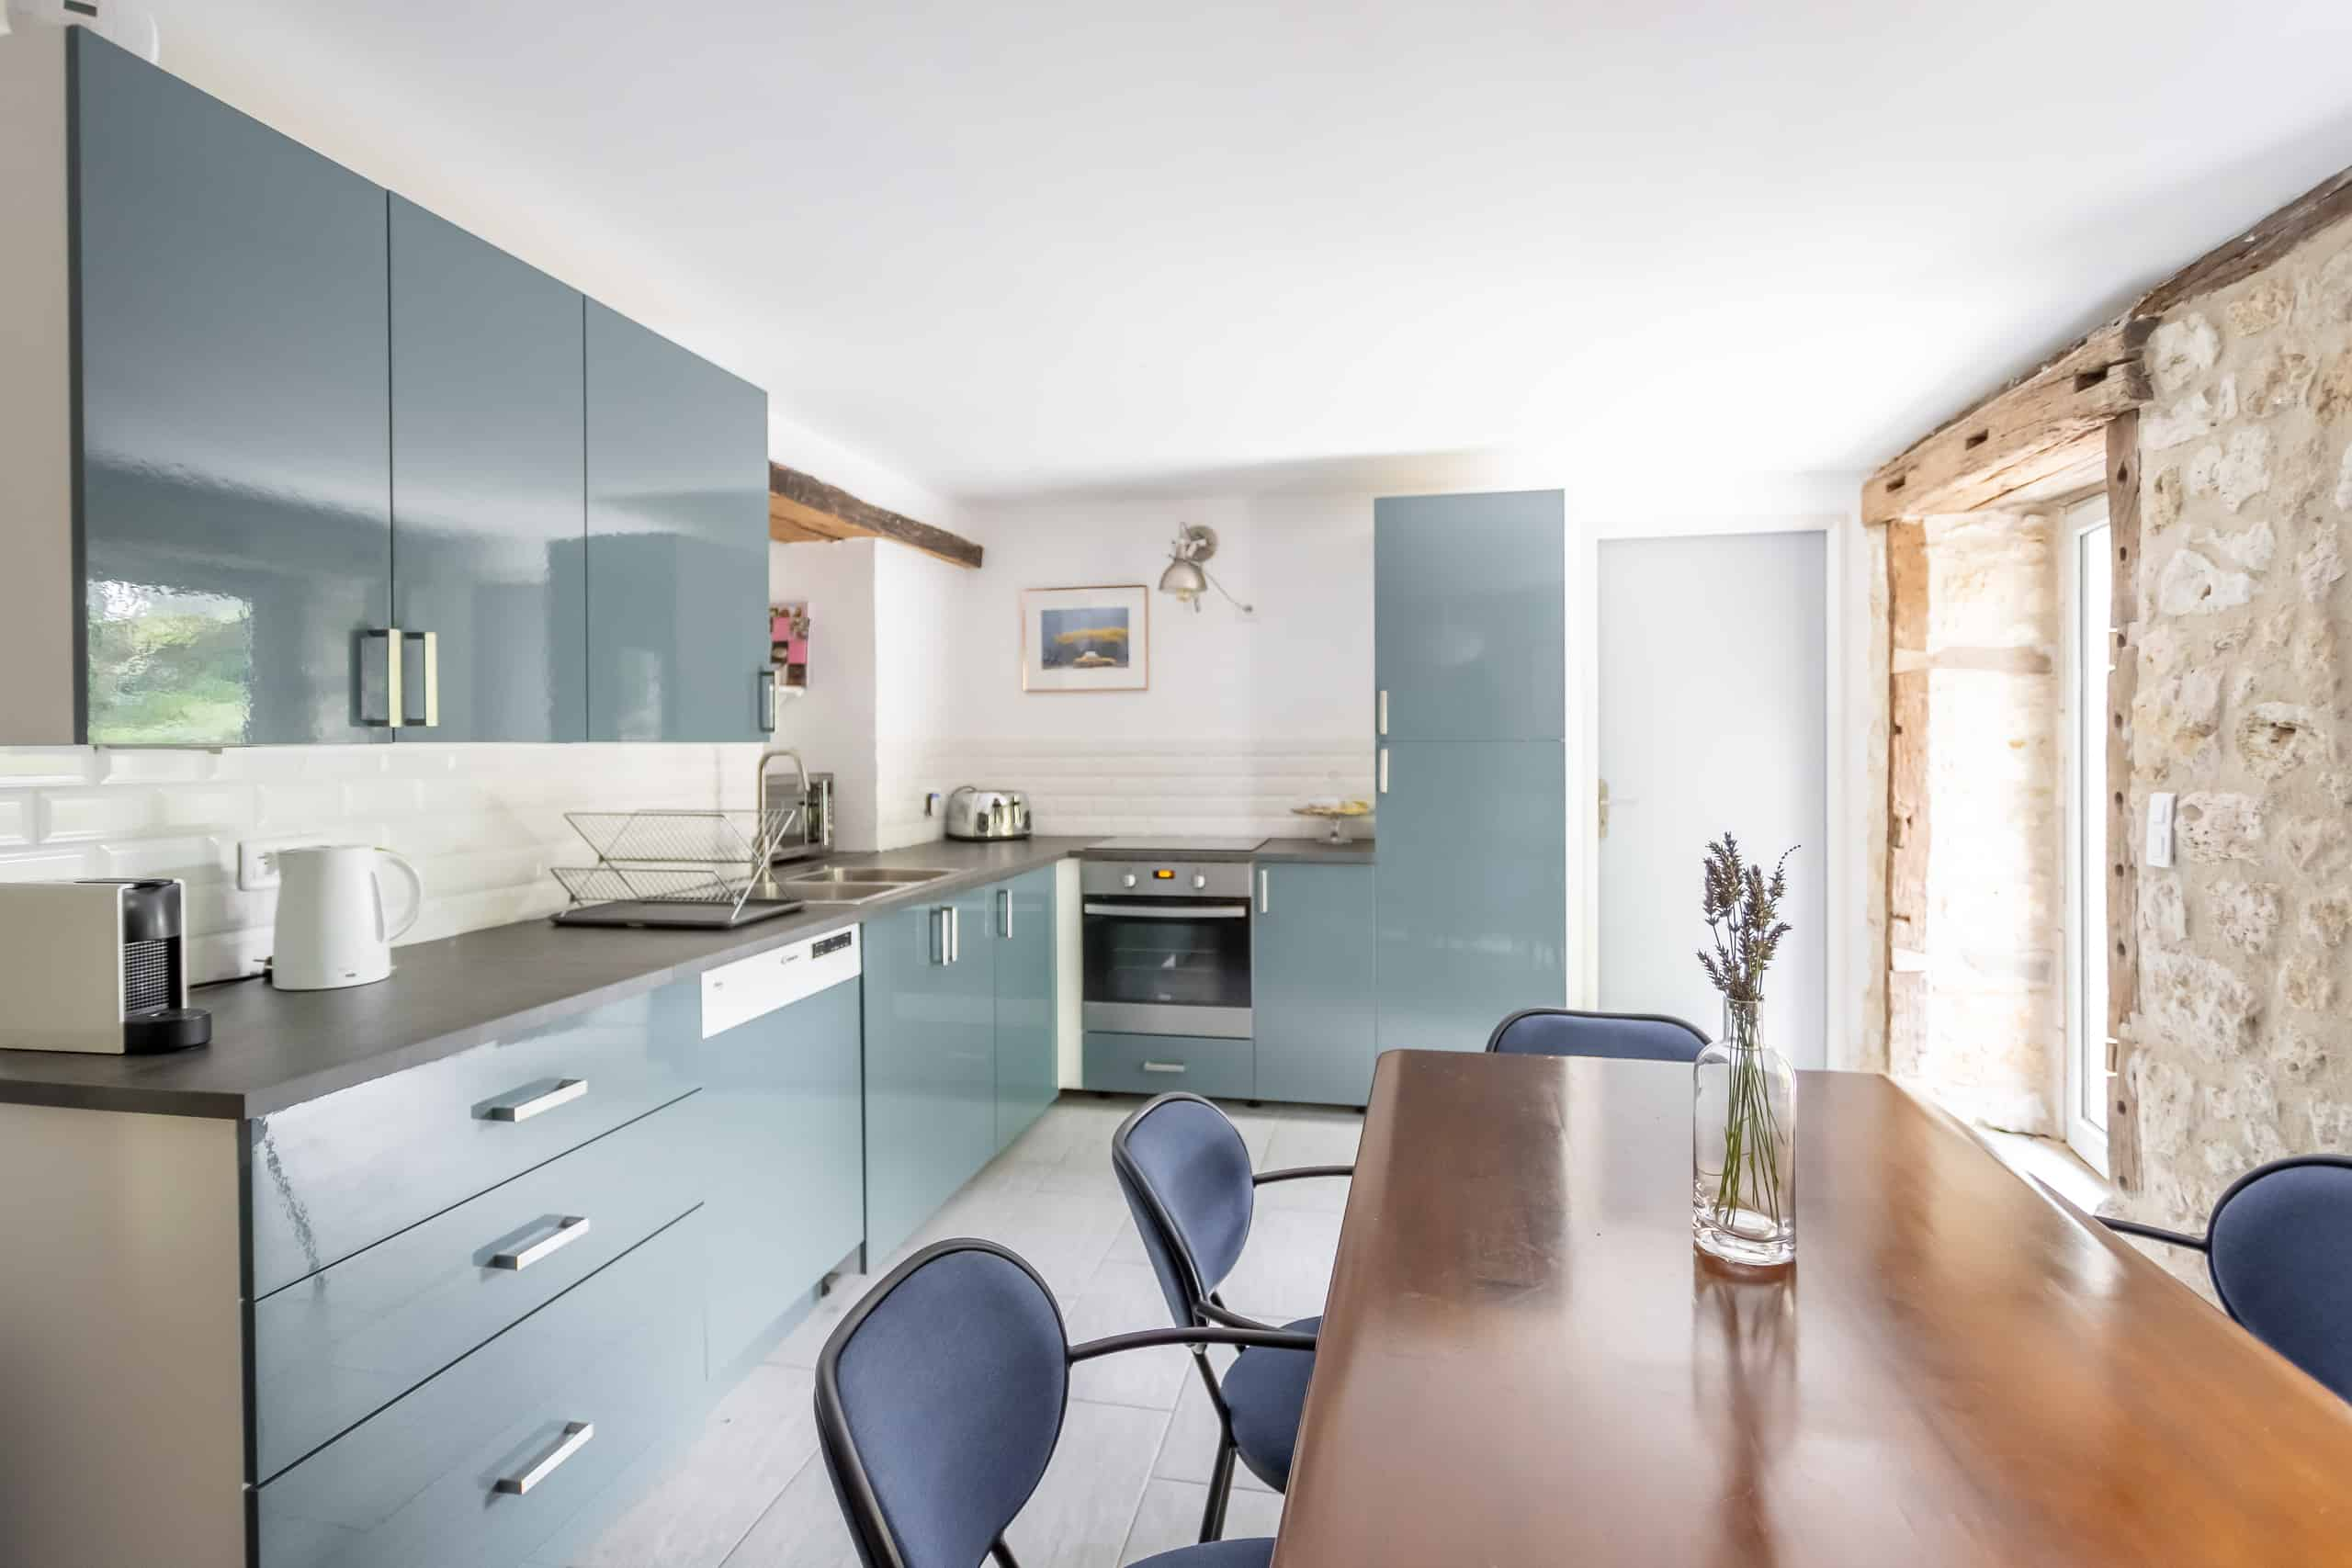 Kitchen-gite-47012